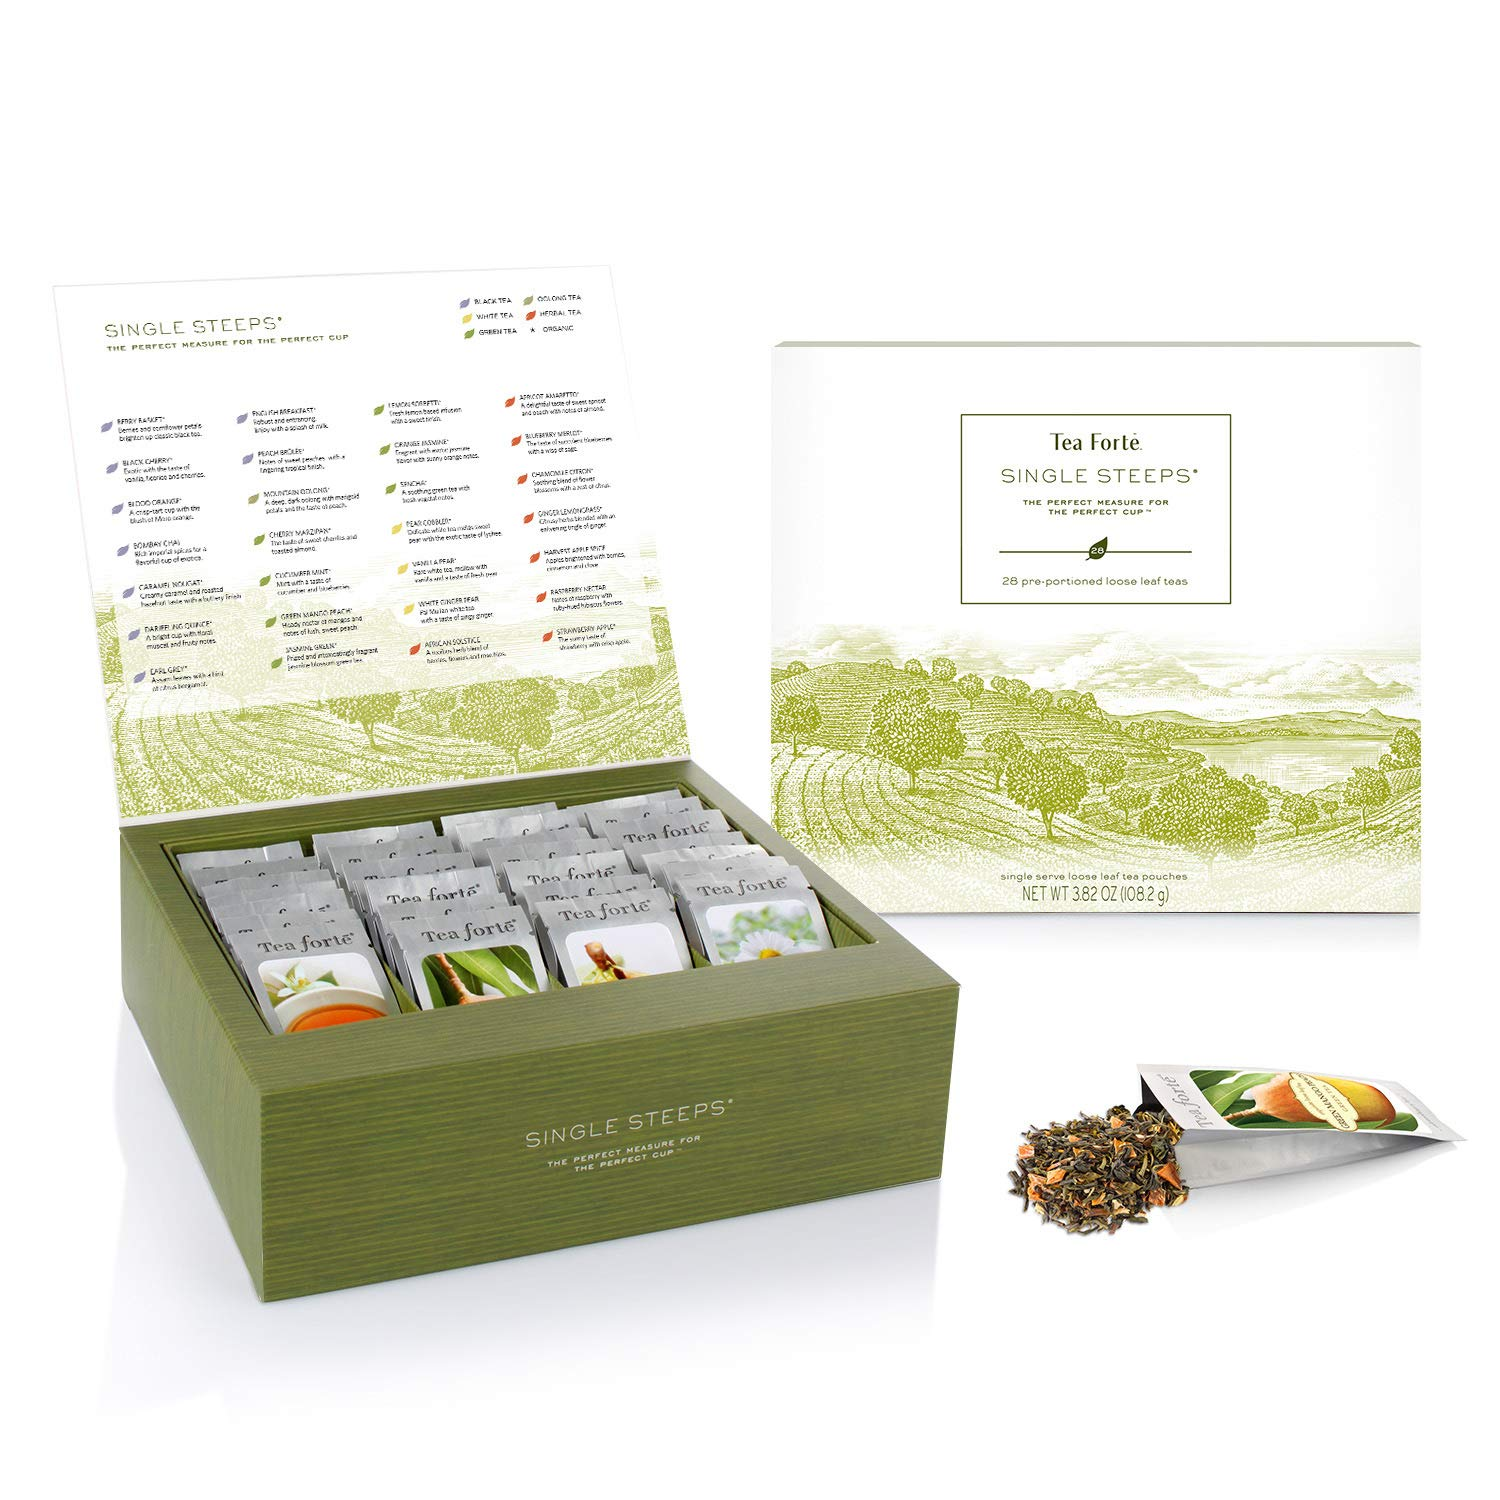 Tea Forte Single Steeps Loose Tea Sampler, Assorted Variety Tea Chest Gift Set, 28 Different Single Serve Pouches, Black Tea, Green Tea, White Tea, Herbal Tea by Tea Forte